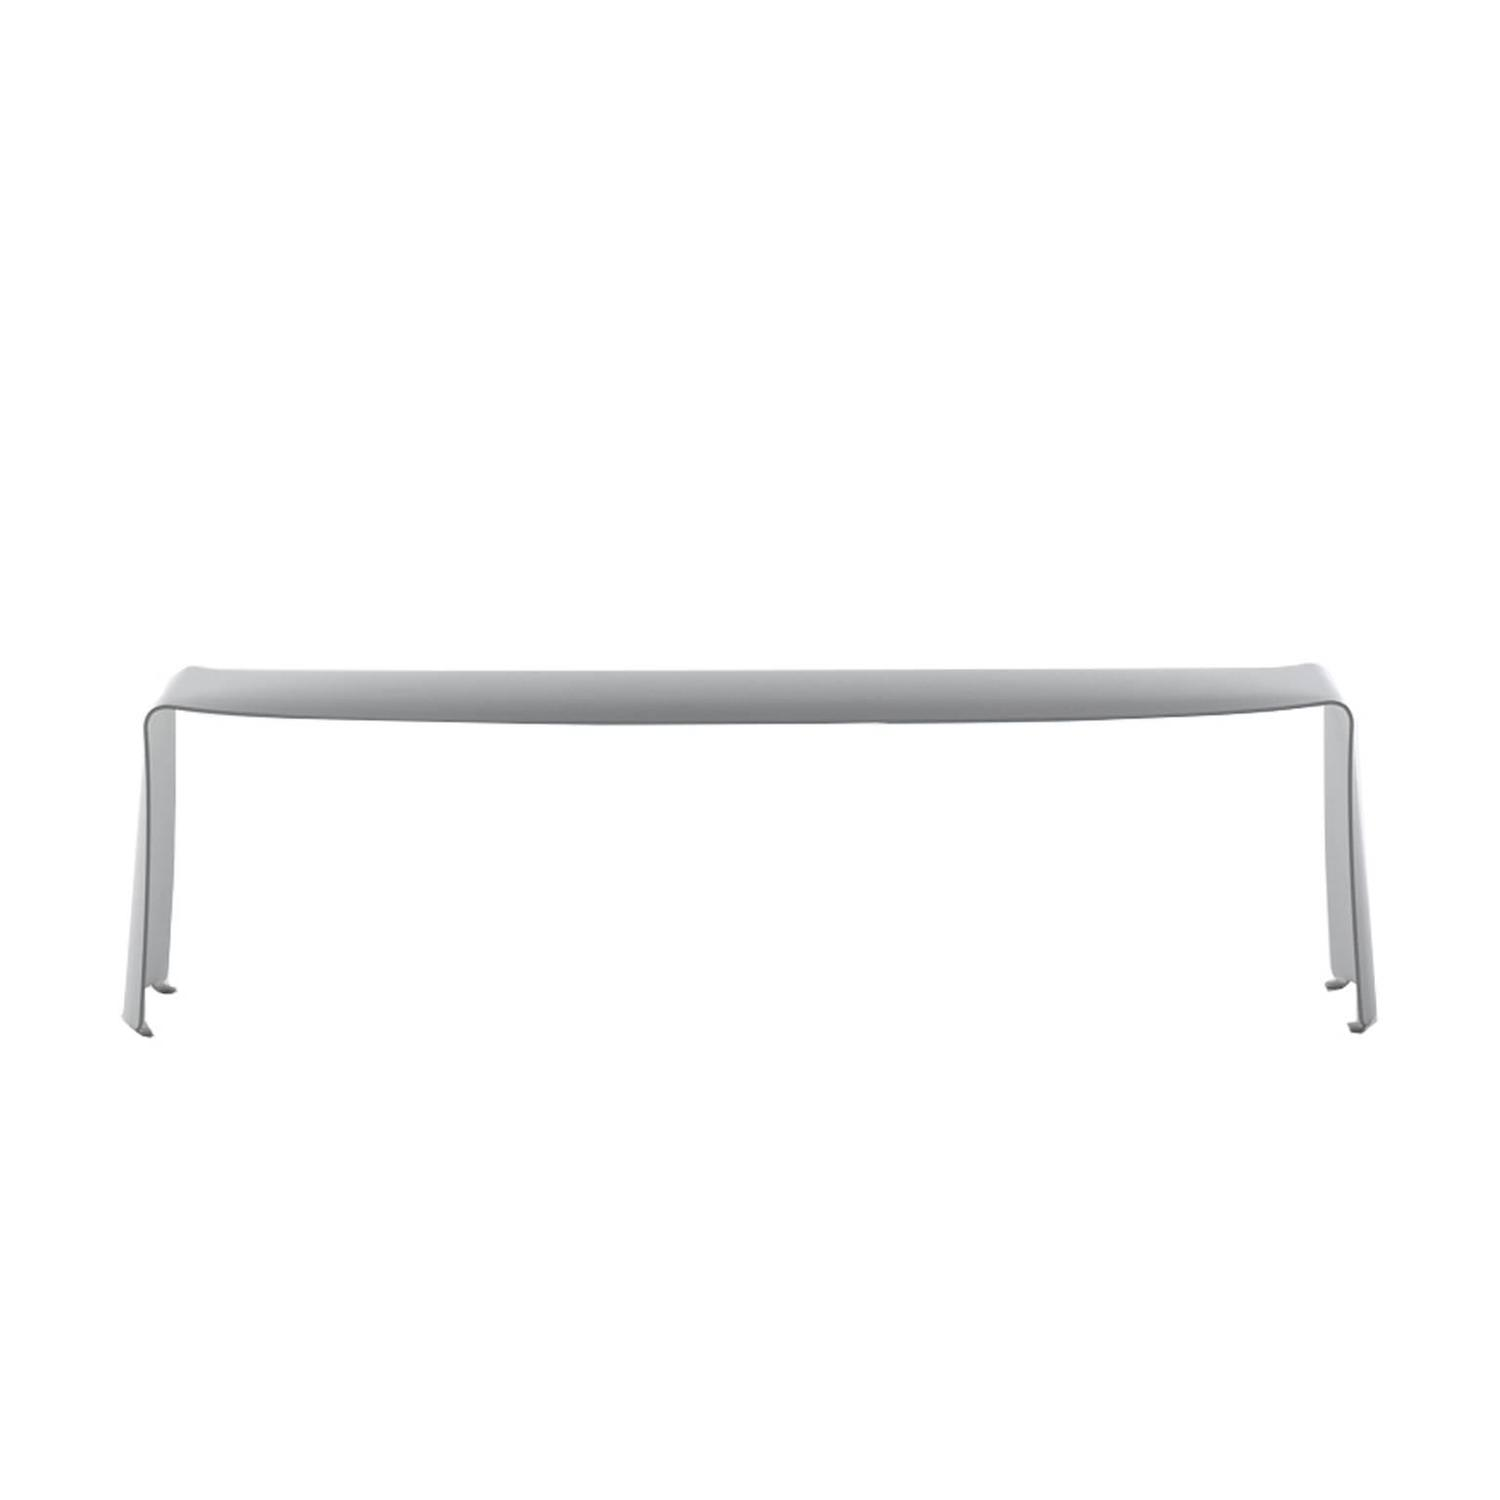 Le Banc Bench by Xavier Lust for MDF Italia For Sale at 1stdibs